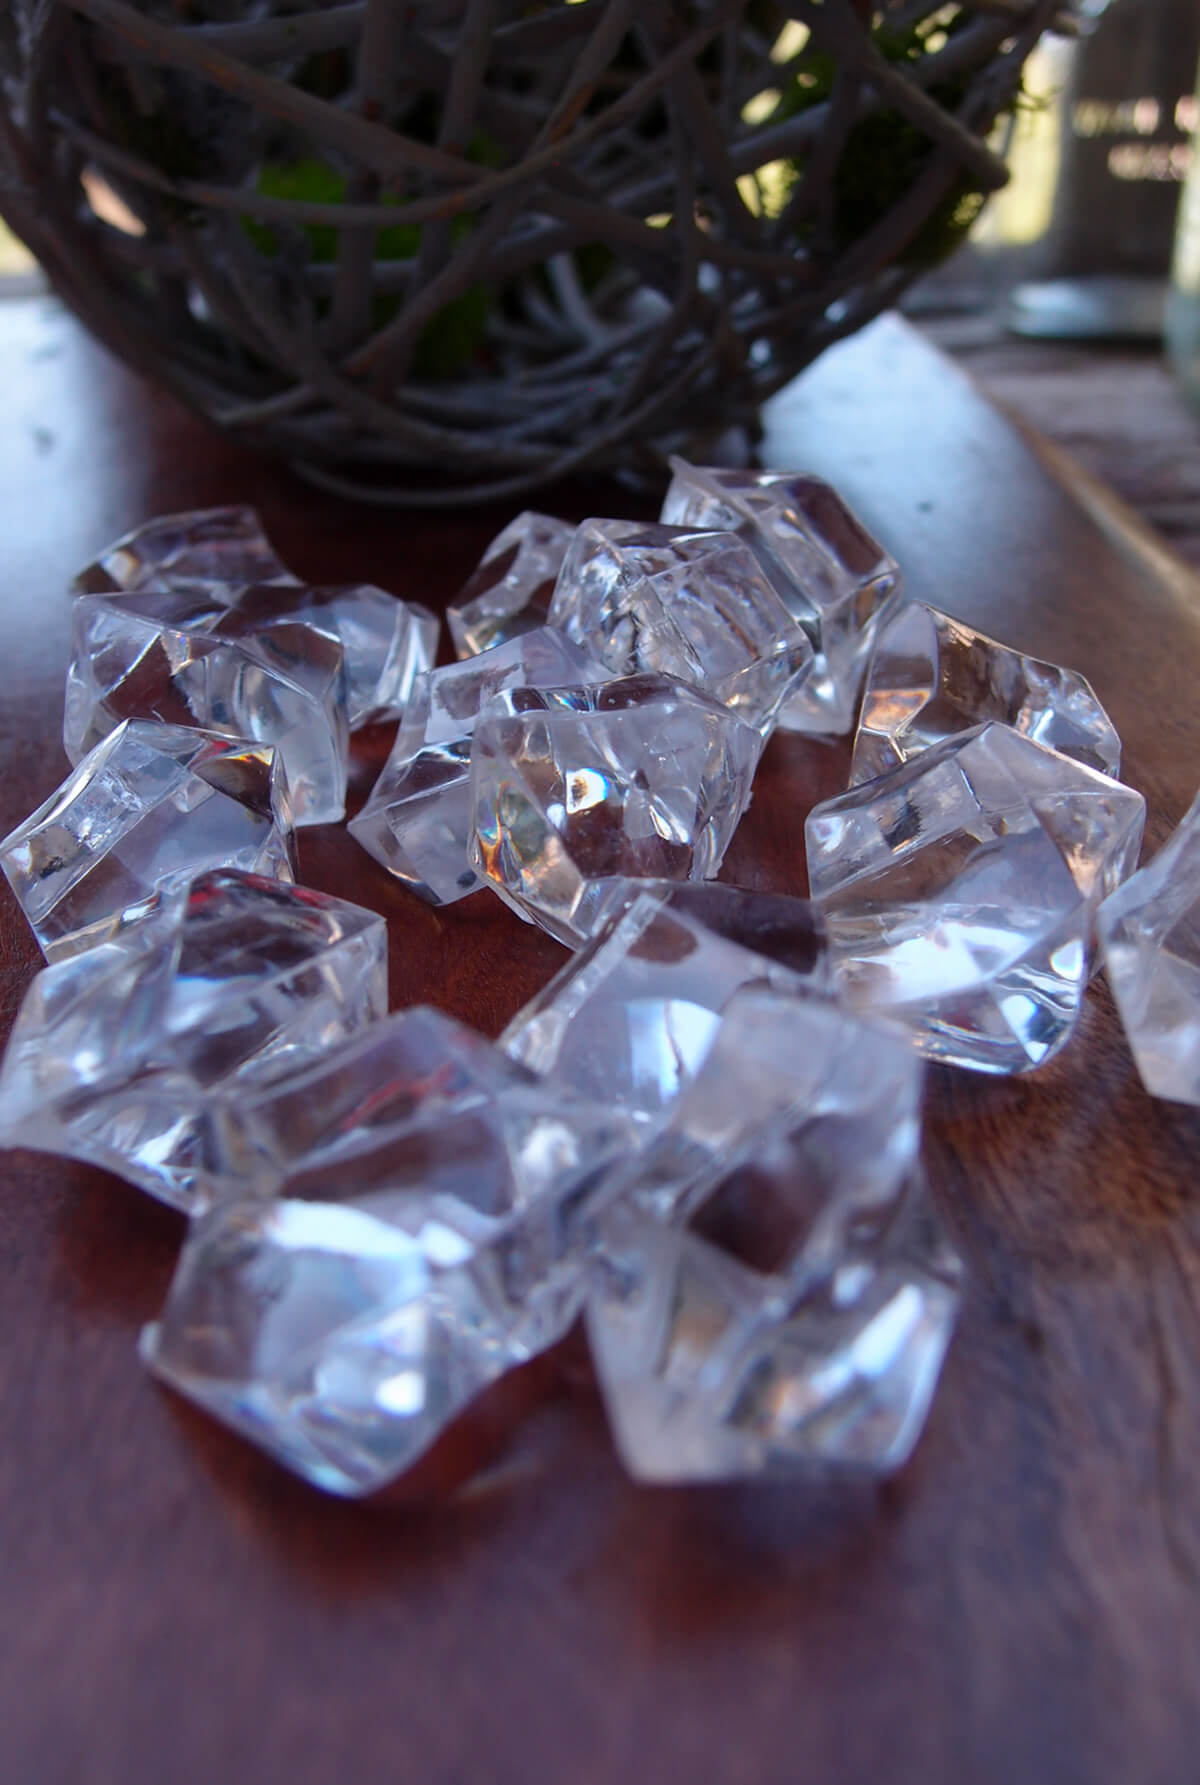 Vase fillers gems cubes glass beads 2060 off saveoncrafts clear acrylic gemstone crystal wedding table confetti 34 lb bag reviewsmspy